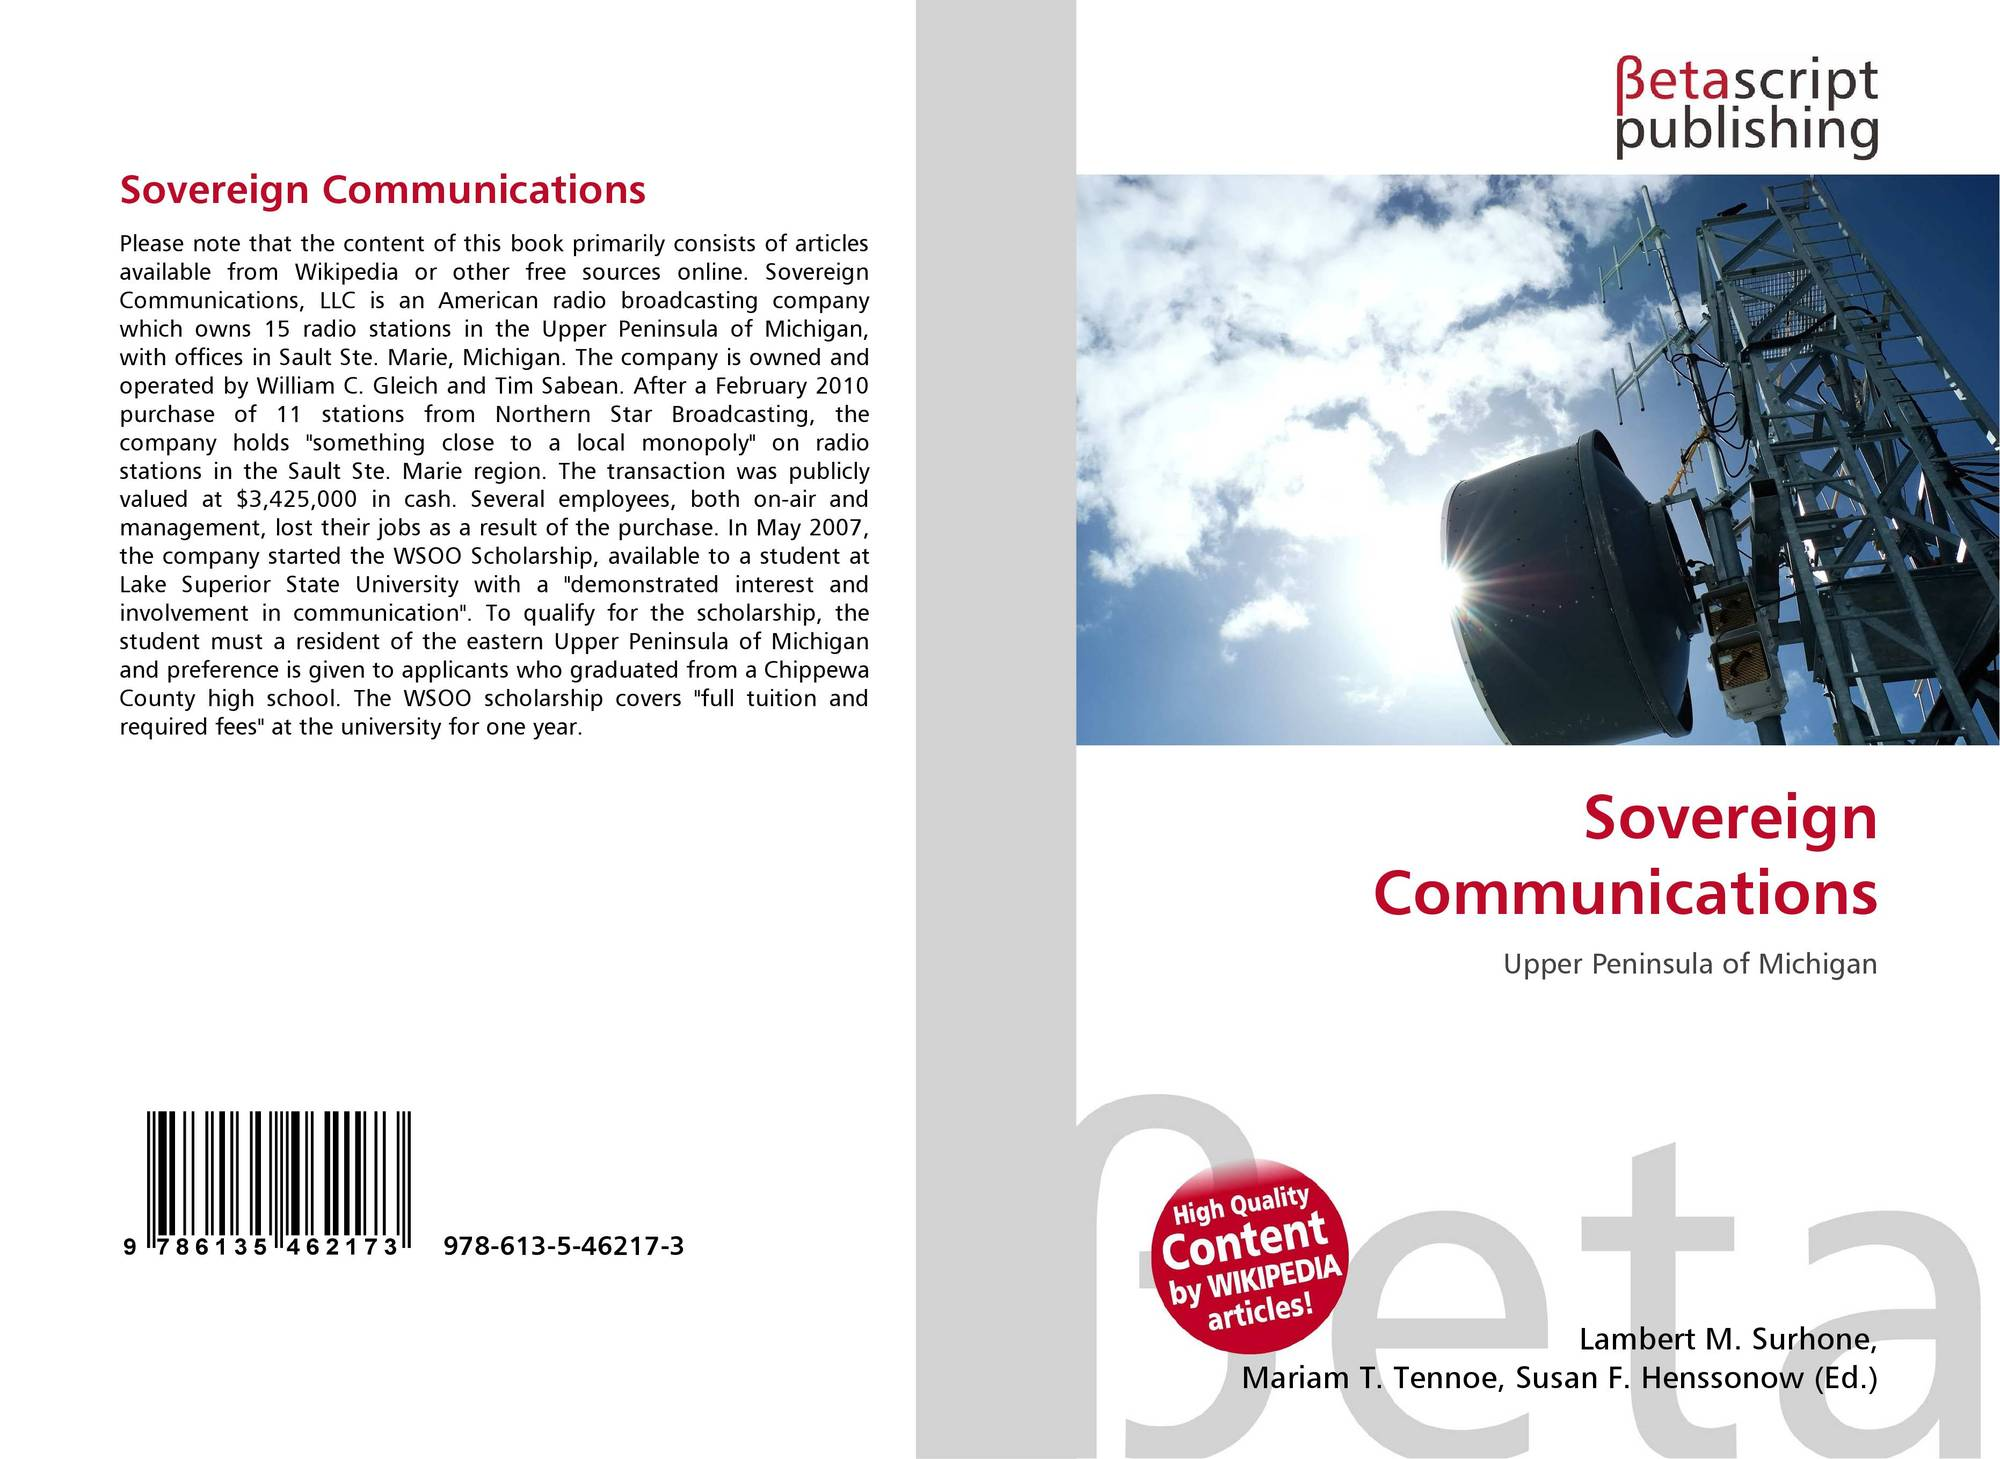 a business report on southwestern bell communication inc an american communications company